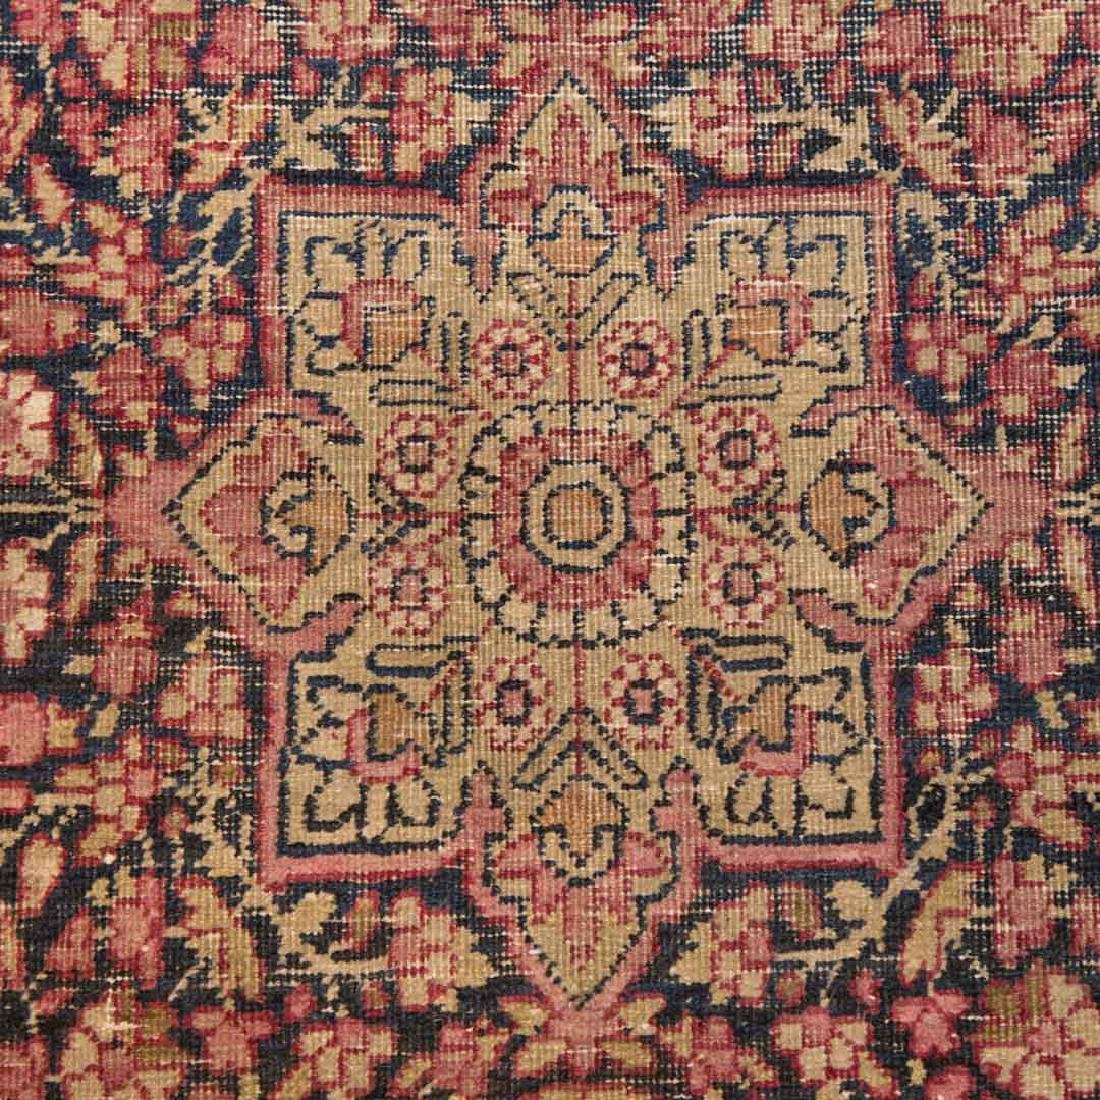 Antique Lavar Kerman rug, approx. 2.11 x 4.5 - 4